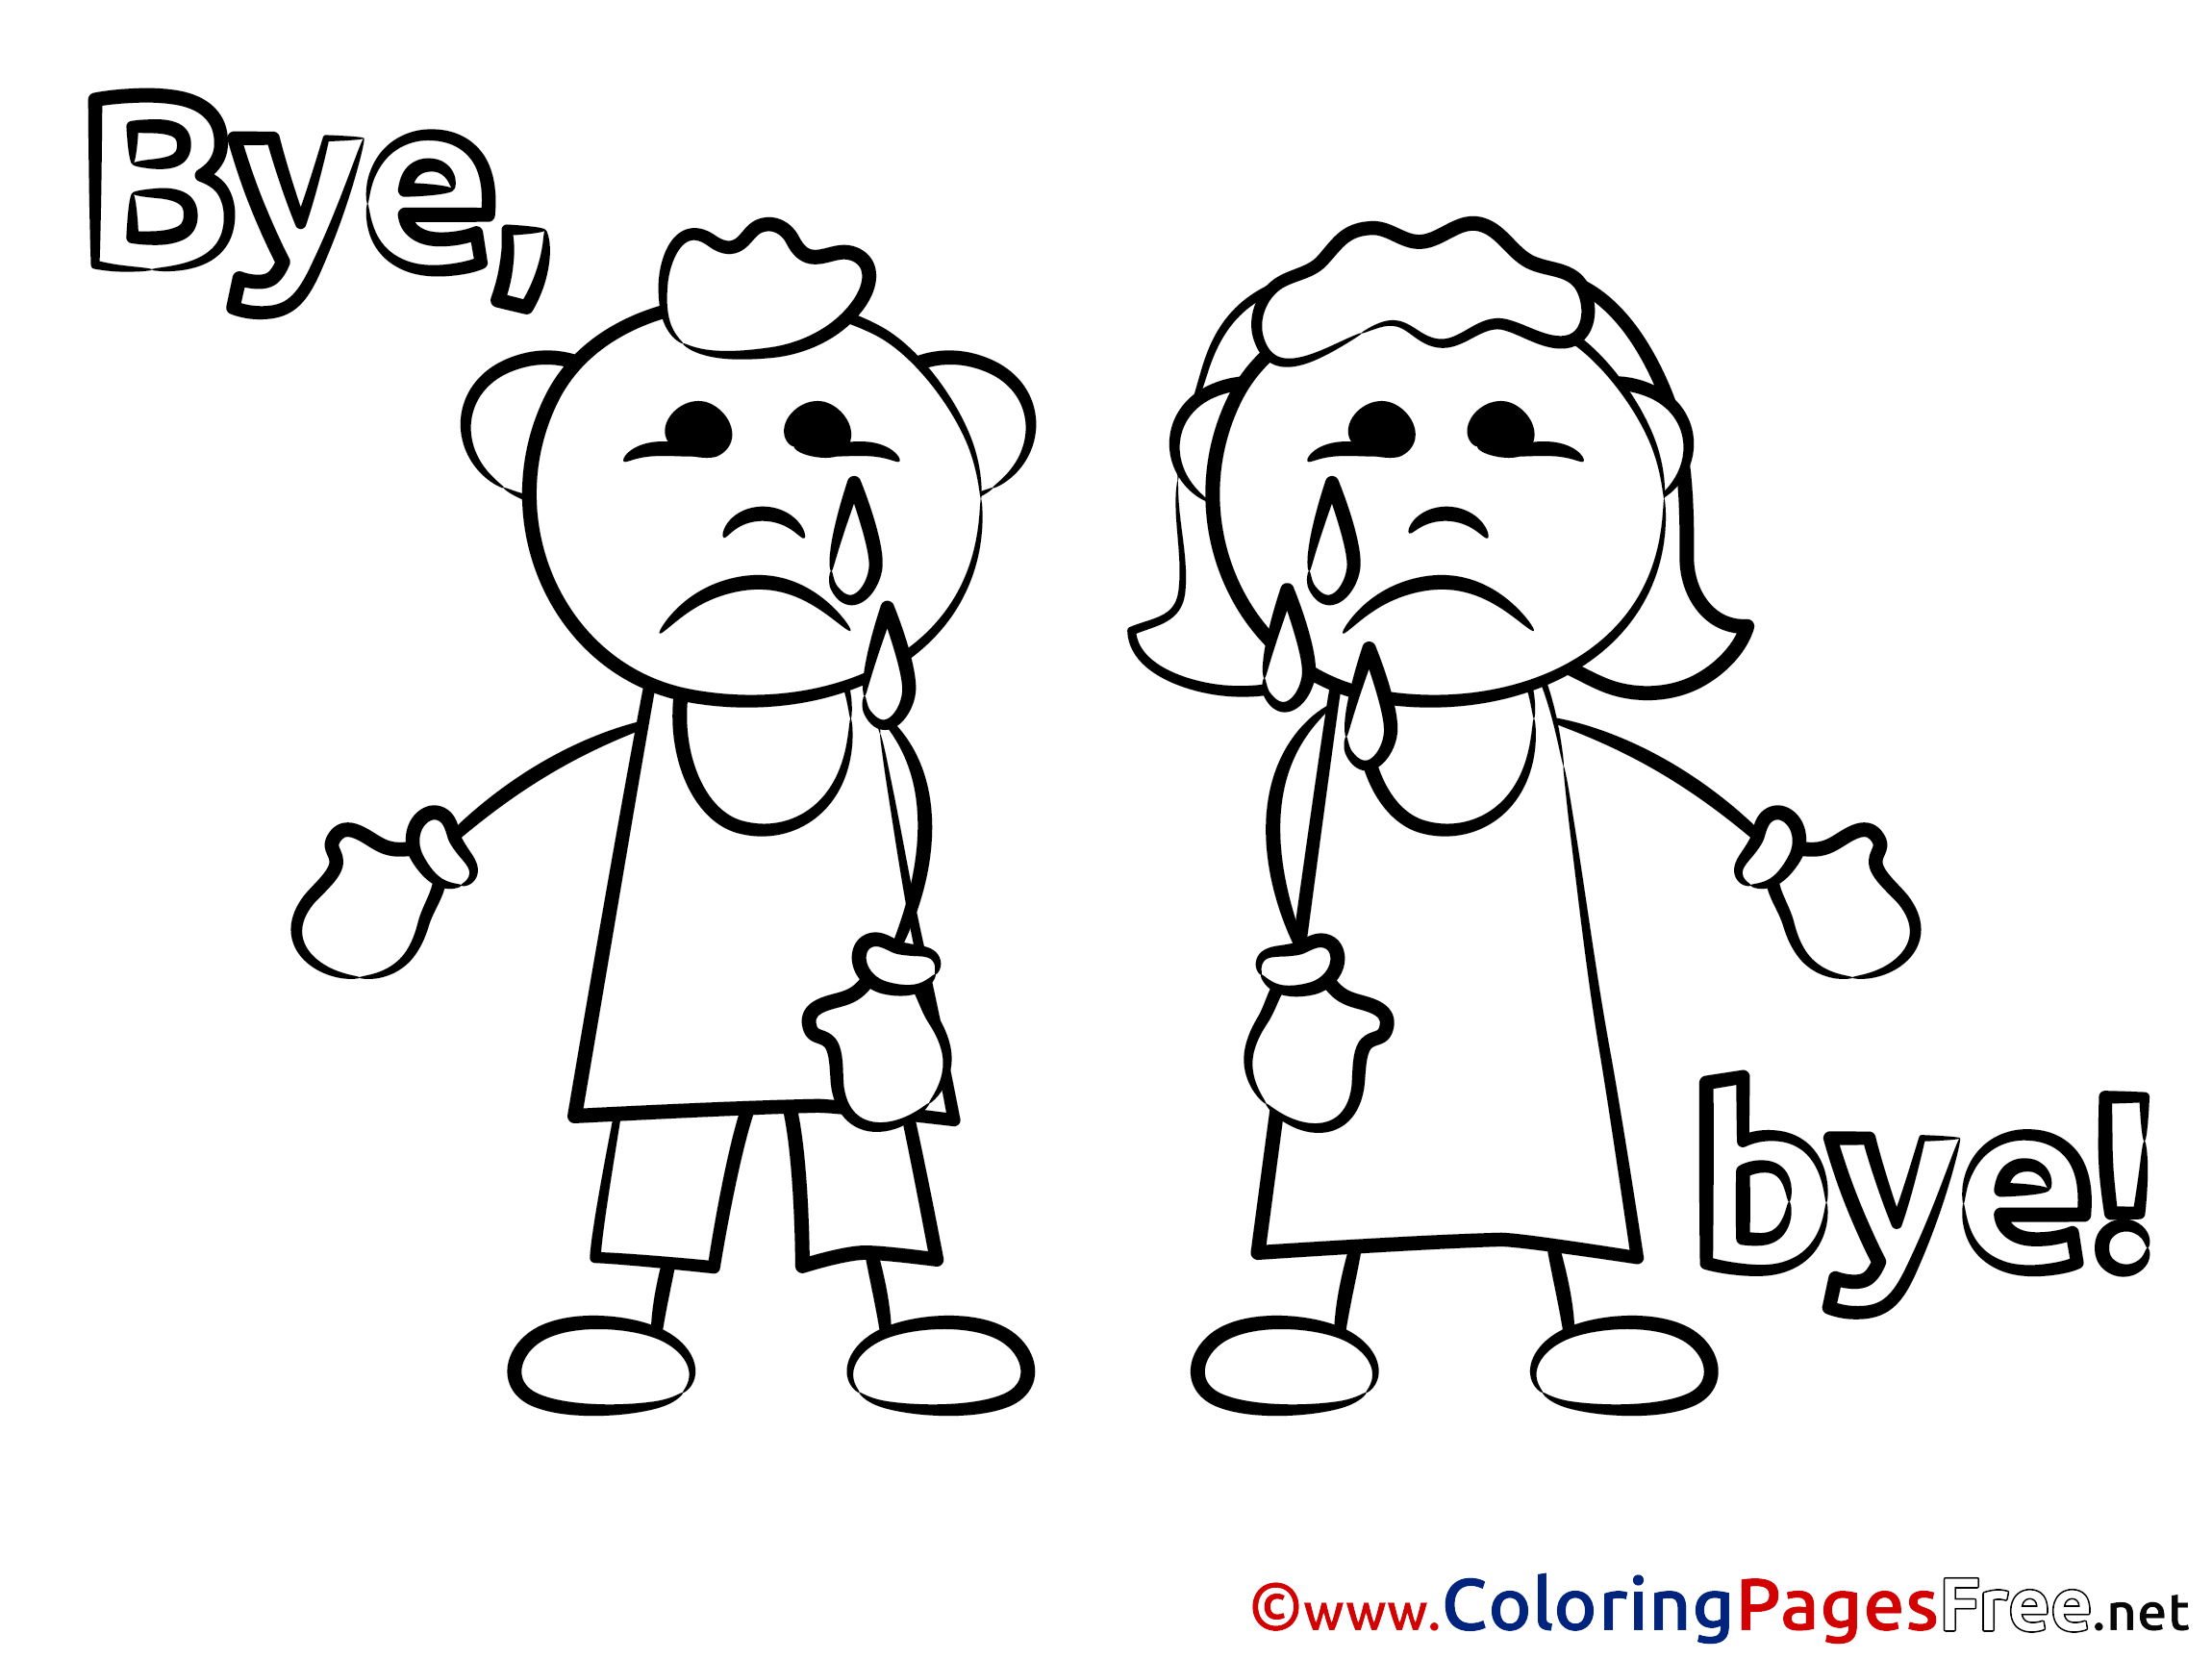 Kids free Colouring Page Good bye